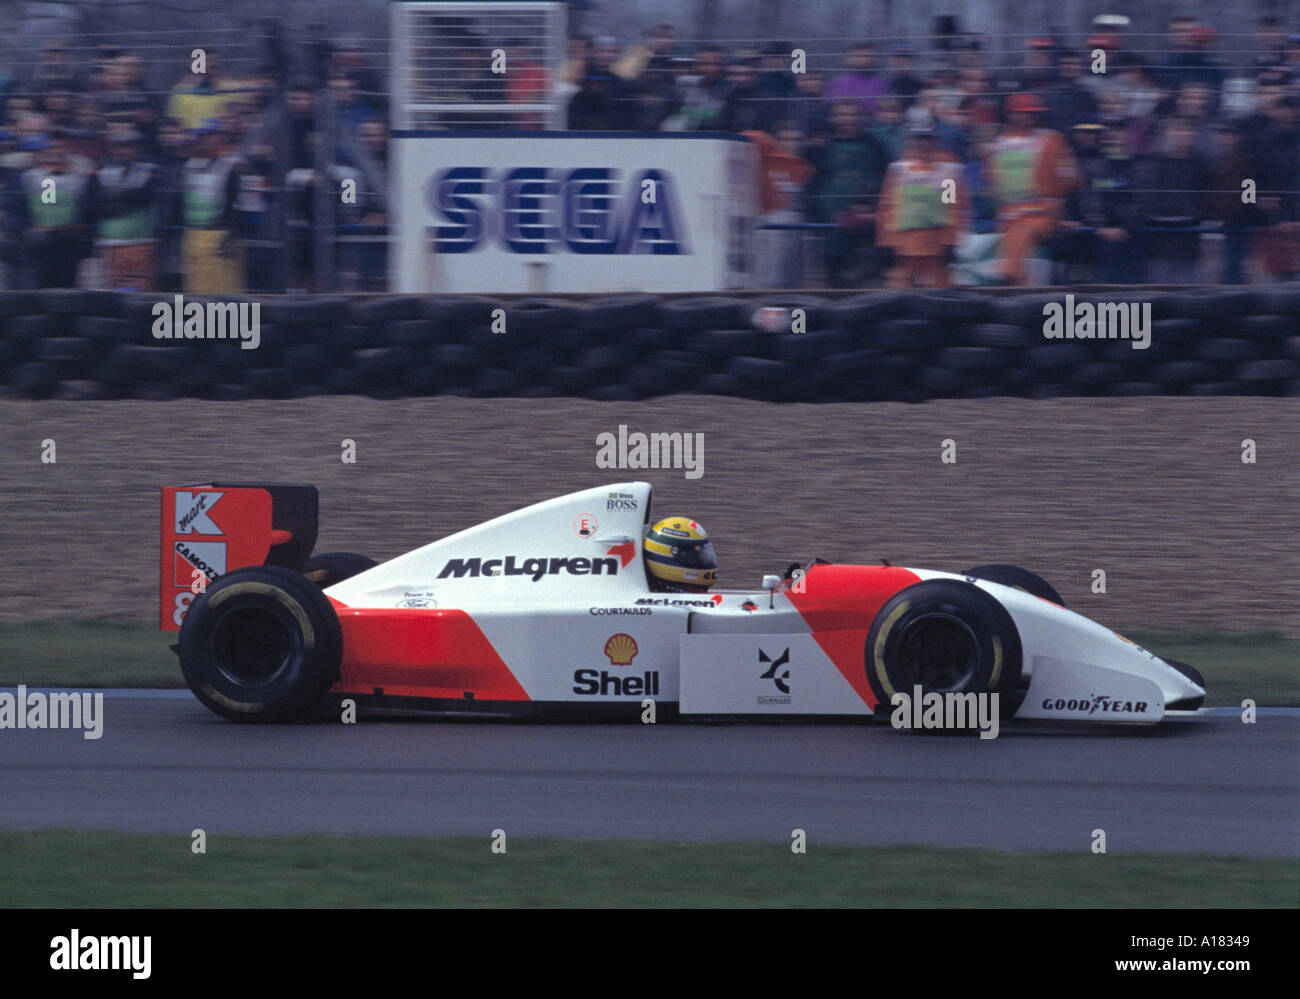 ayrton senna stockfotos ayrton senna bilder alamy. Black Bedroom Furniture Sets. Home Design Ideas